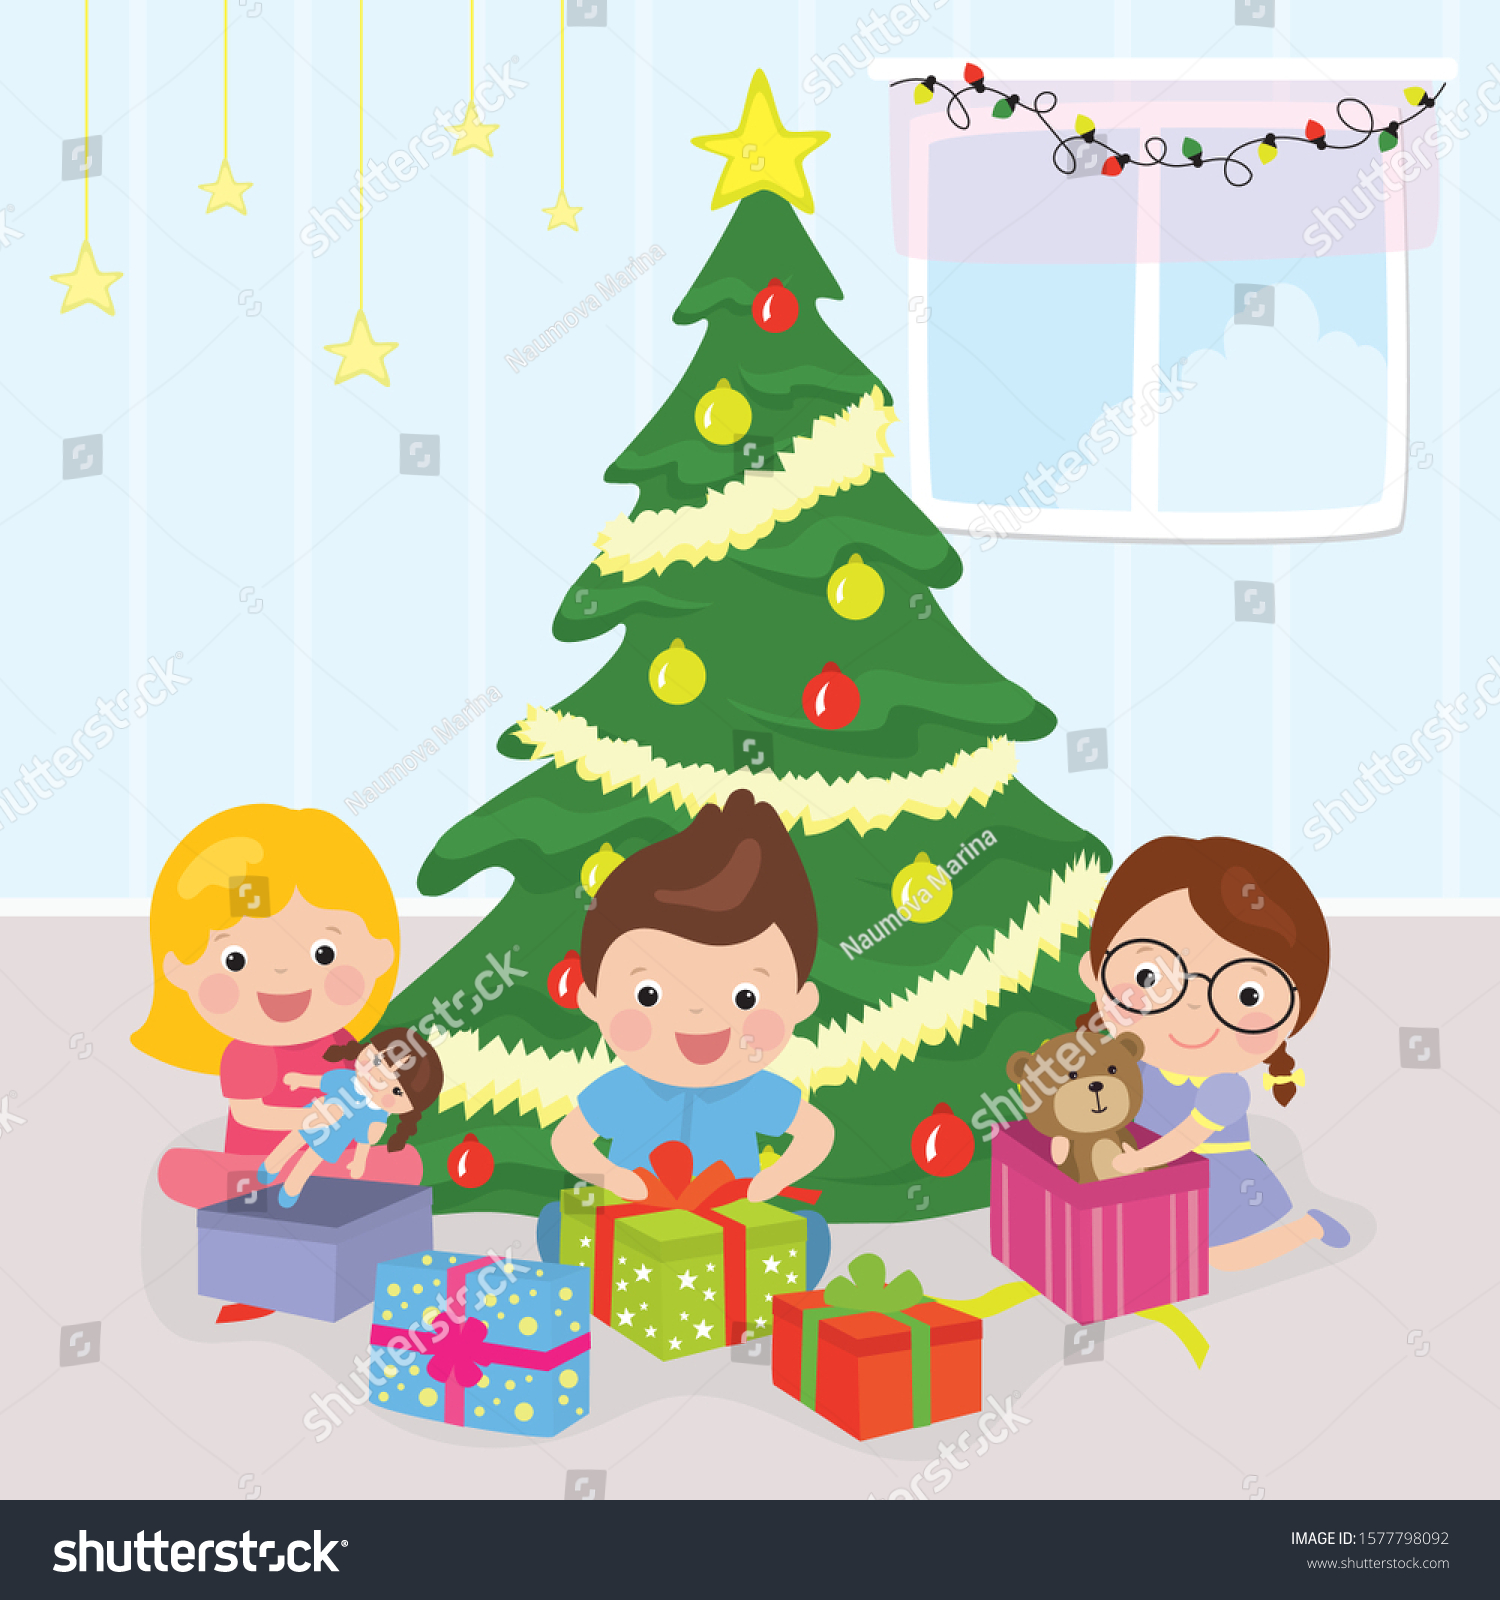 Christmas Tree Presents Three Cartoon Happy Stock Vector Royalty Free 1577798092 Choose from 1700+ cartoon tree graphic resources and download in the form of png, eps, ai or psd. https www shutterstock com image vector christmas tree presents three cartoon happy 1577798092